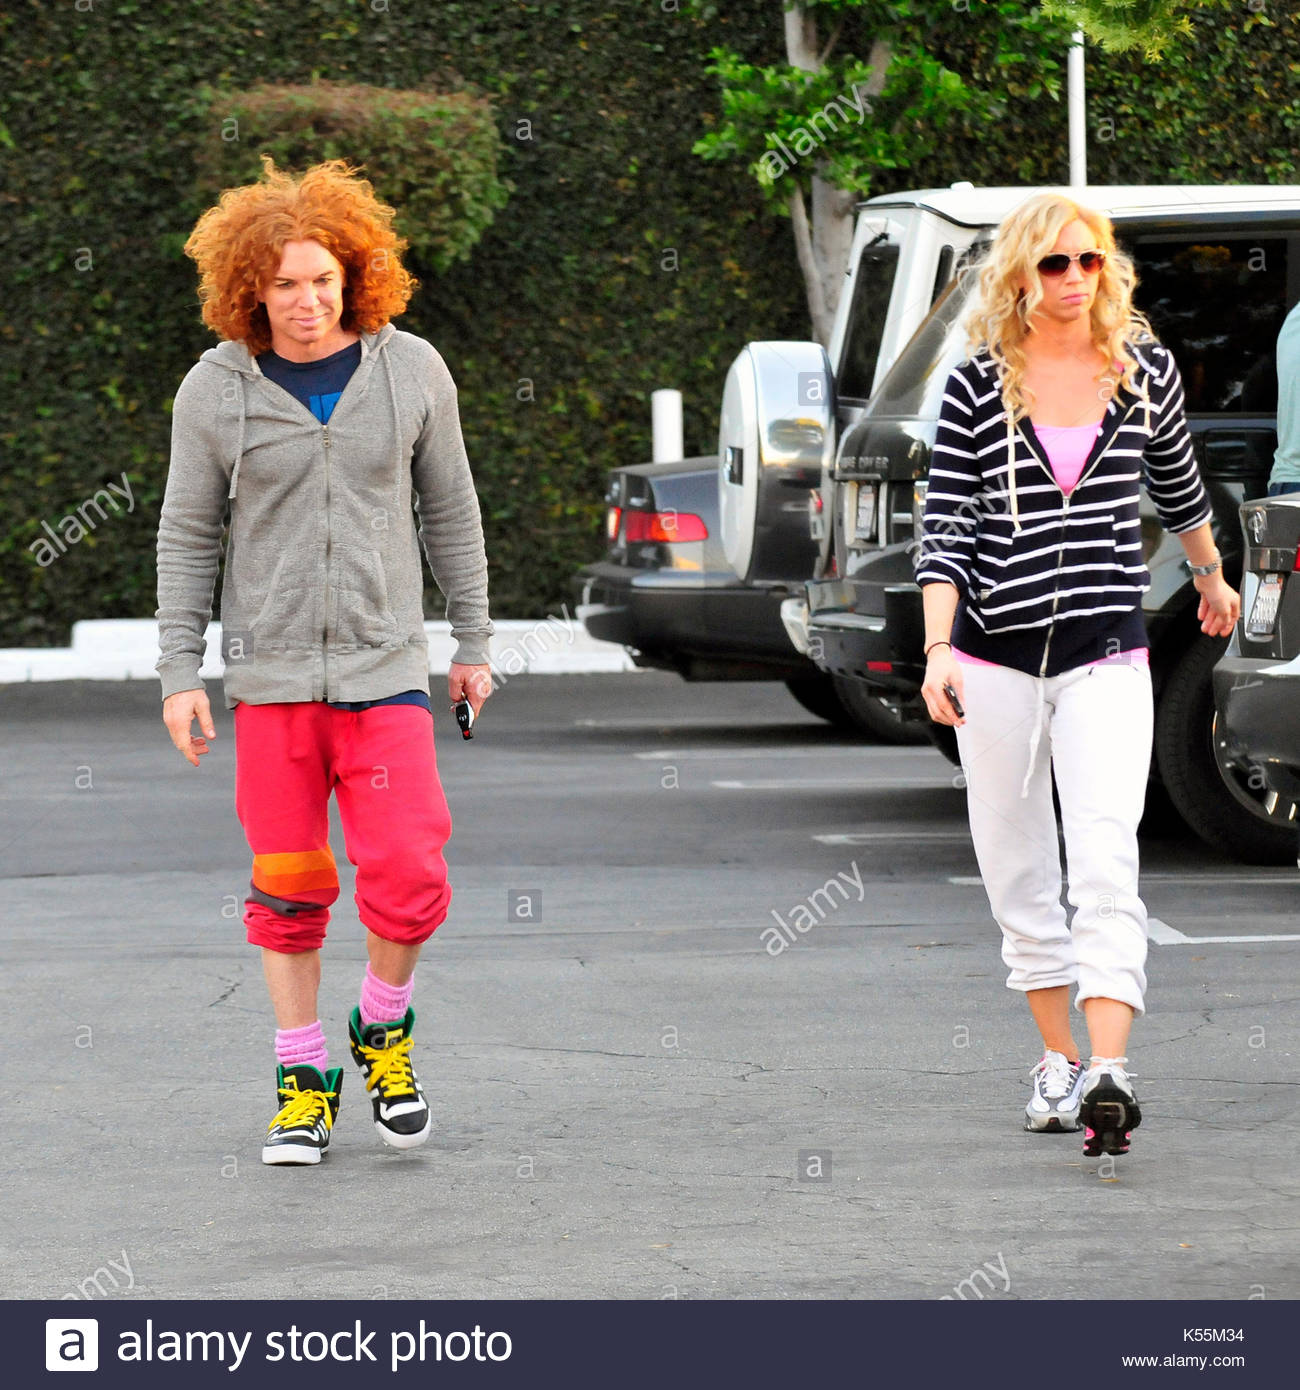 Does Carrot Top Have A Girlfriend